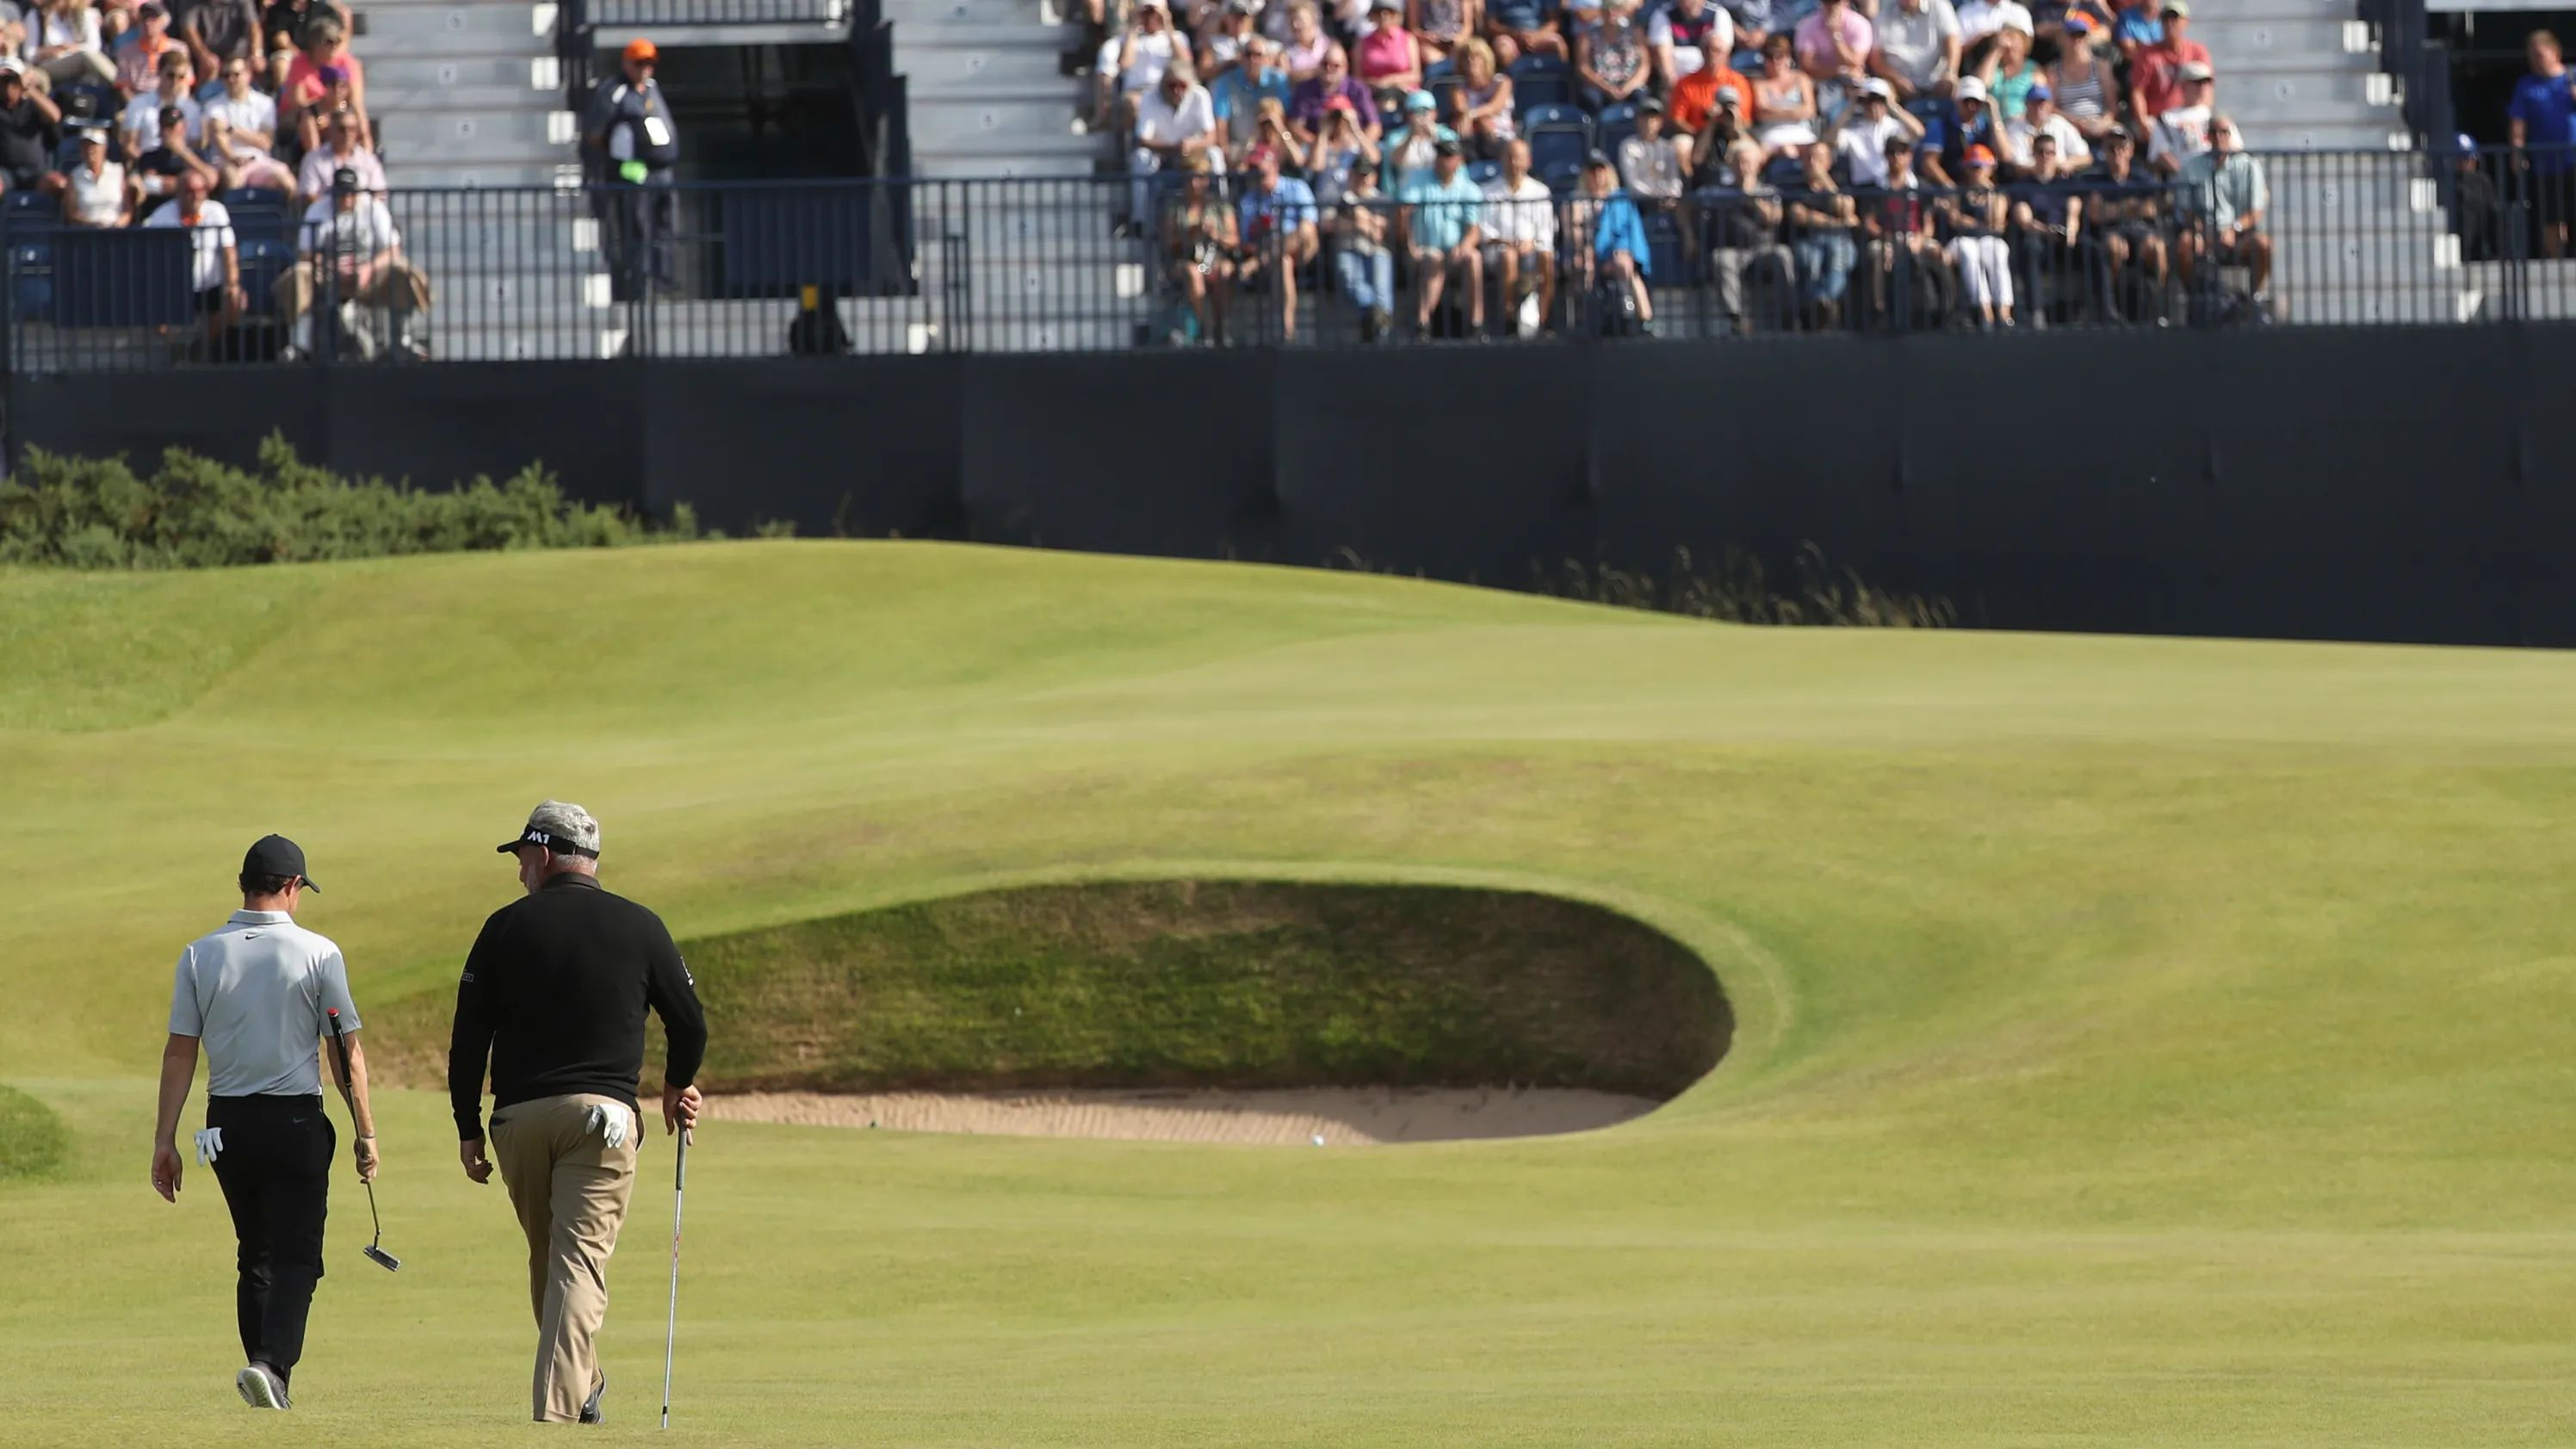 results of the 2017 british open golf tournament